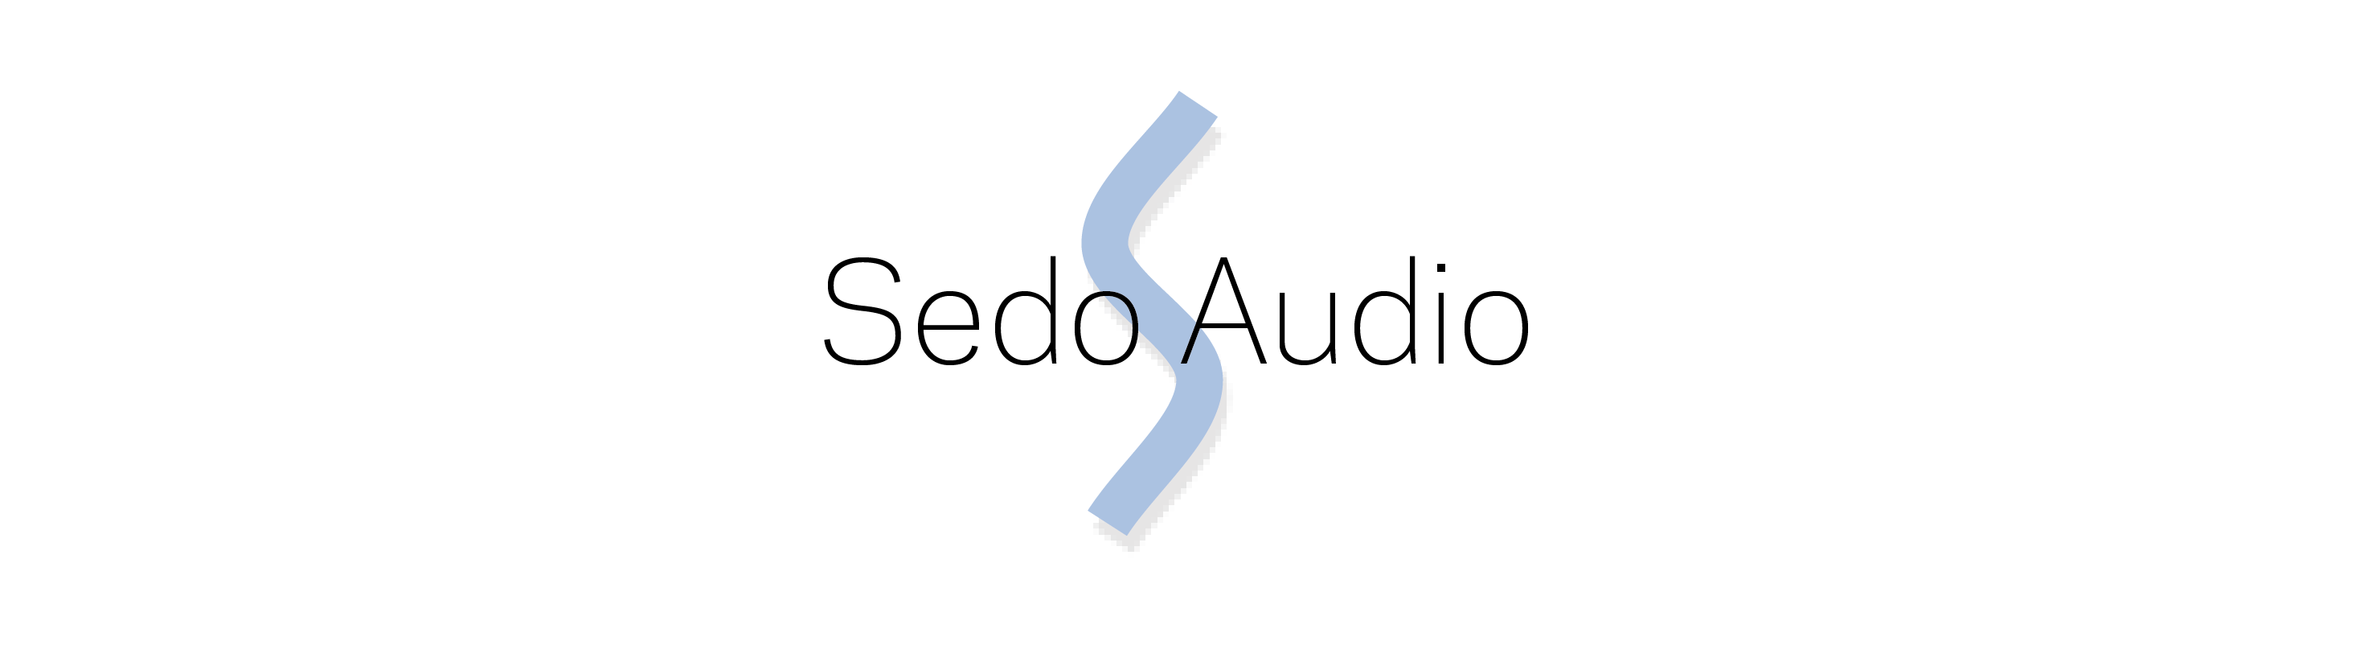 Sedo Audio